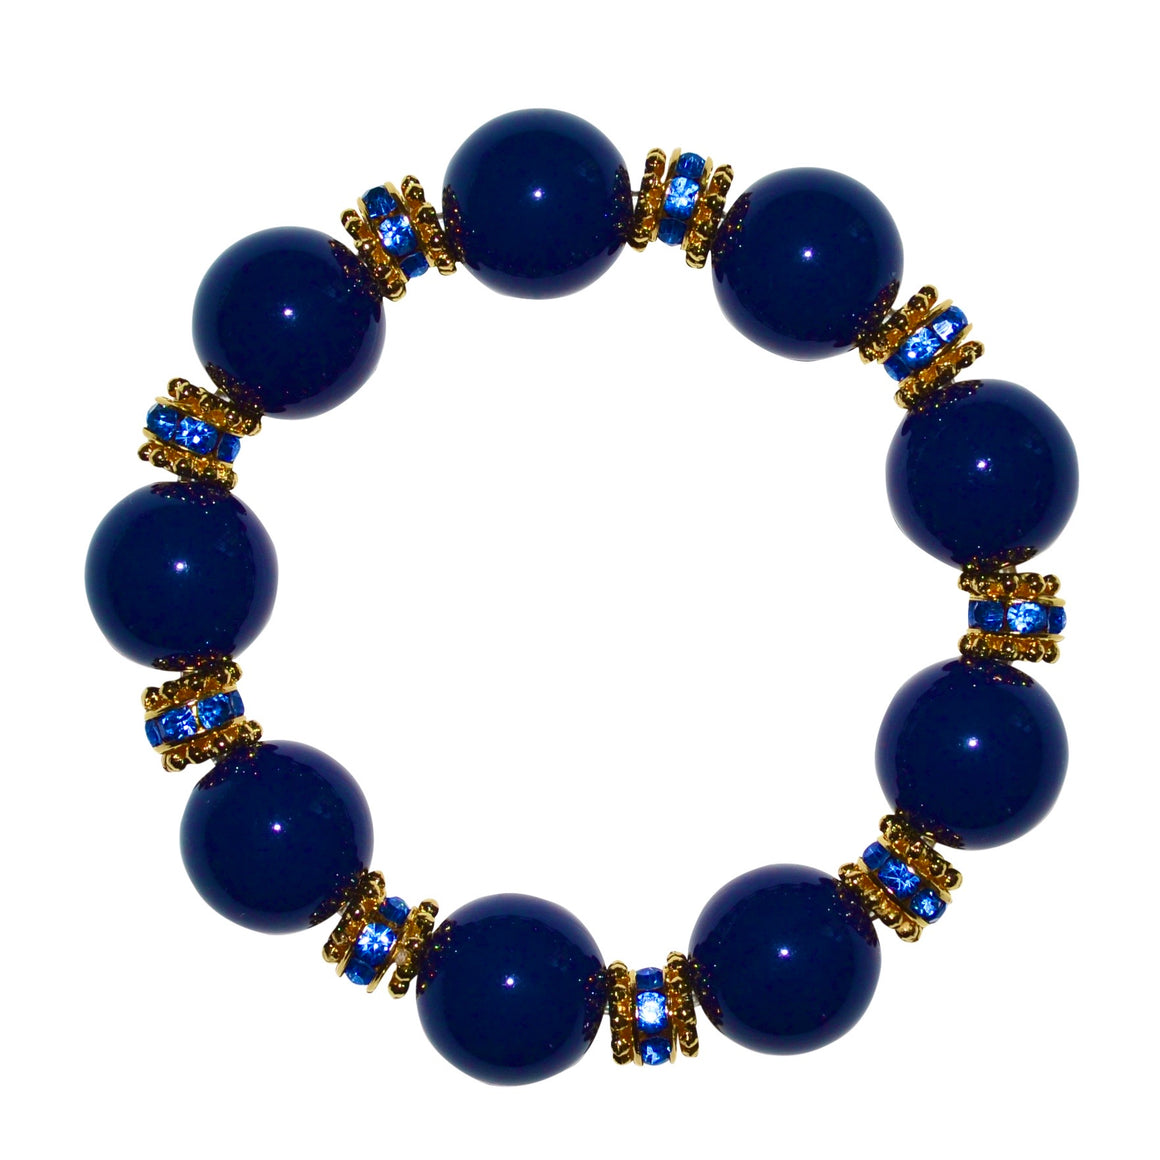 ELLIS ANYTIME BANGLE IN NAVY BLUE